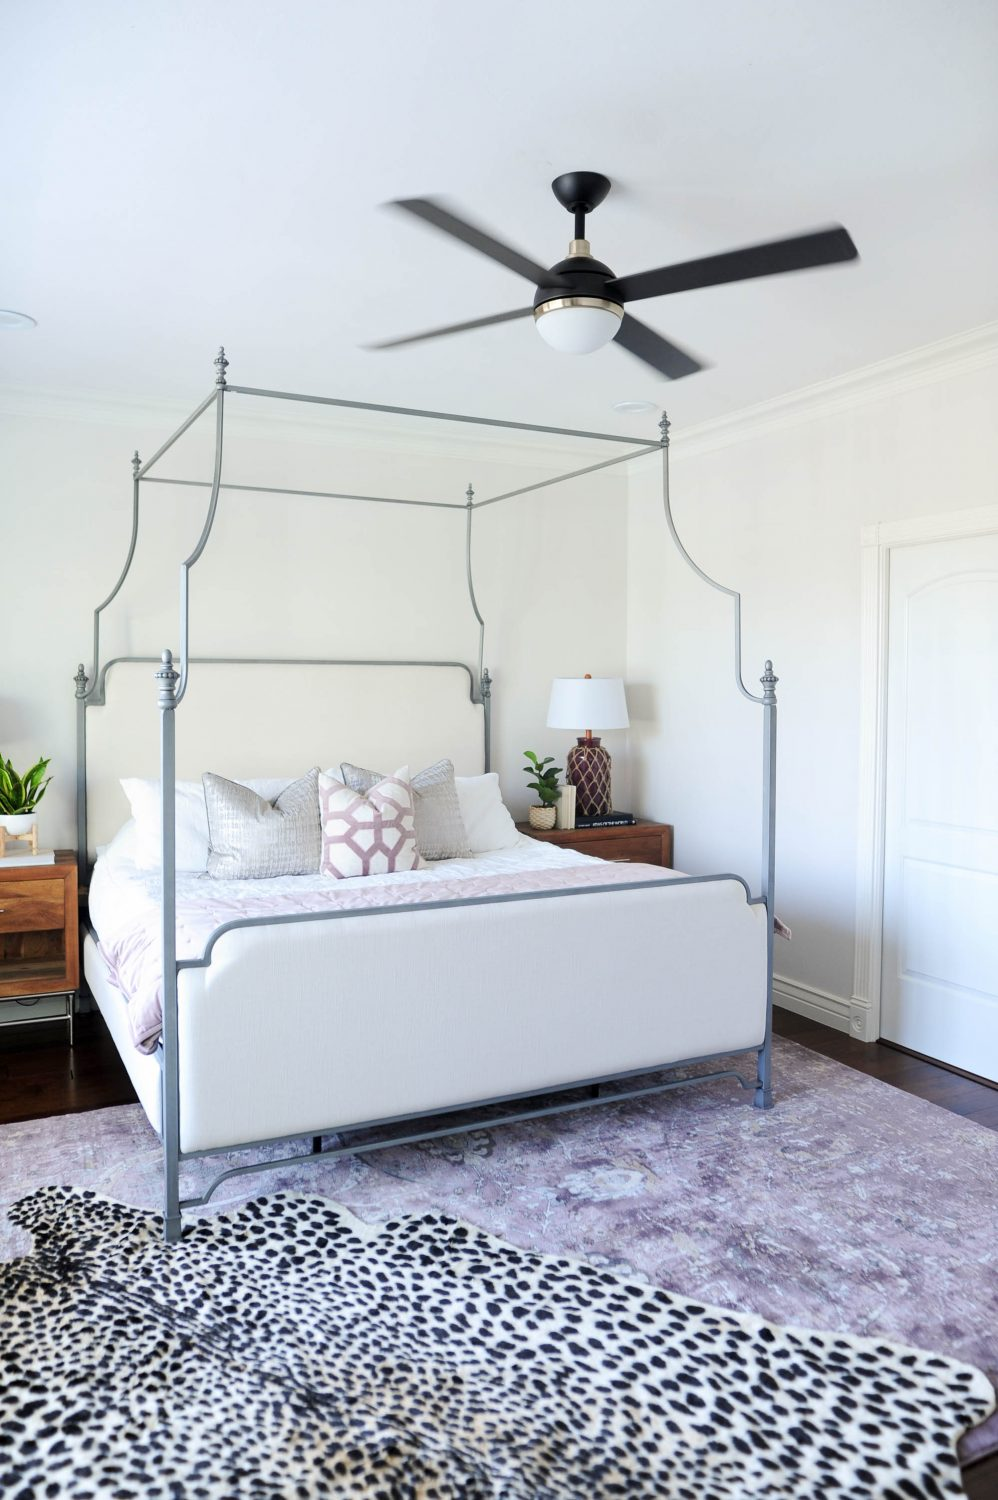 Modern Master Bedroom With Black Purple And Leopard Accents Reveal All Things Thrifty